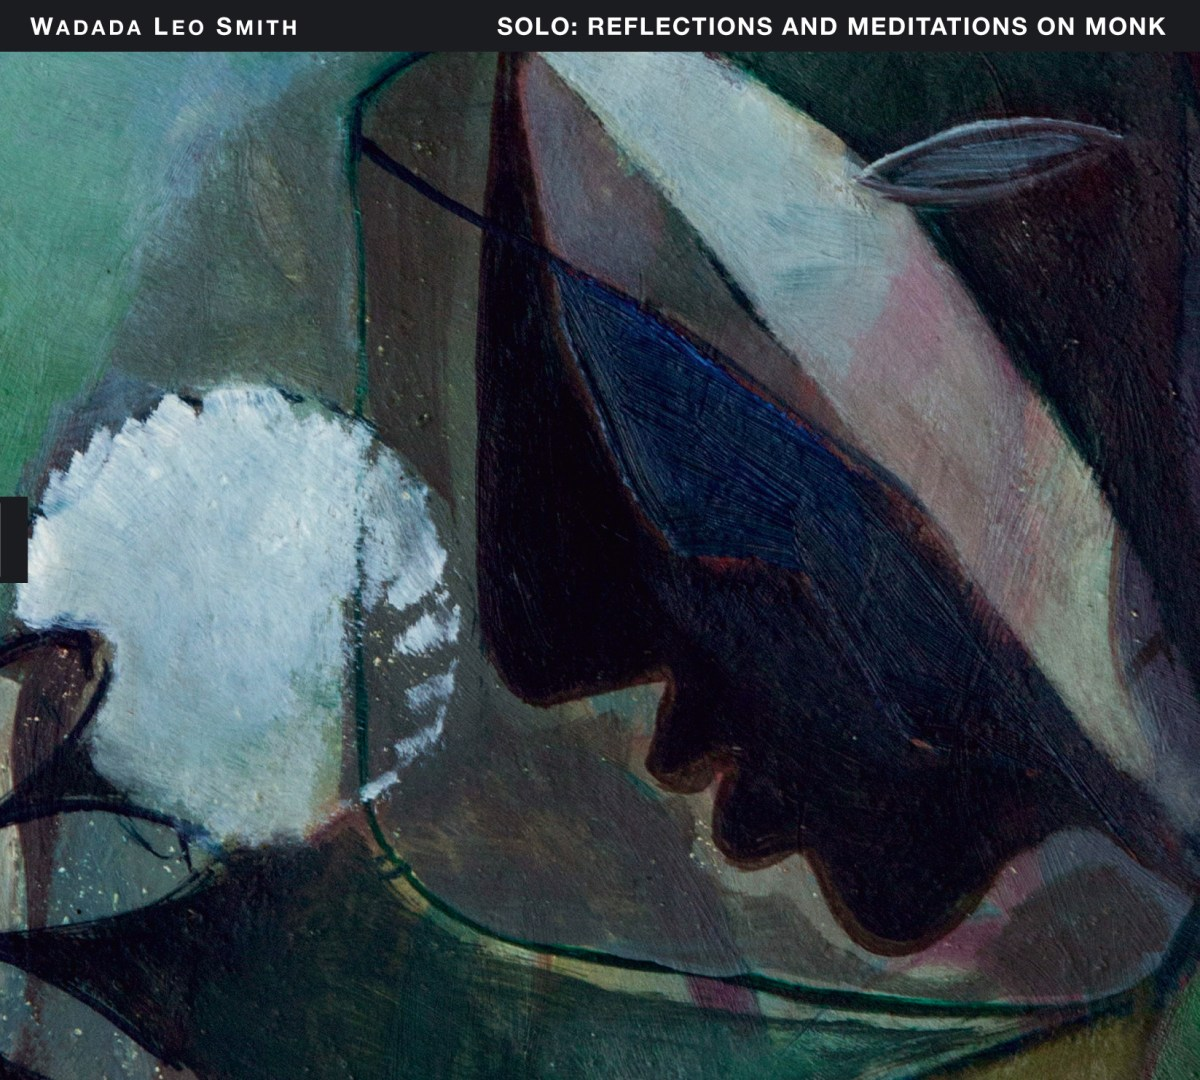 Wadada Leo Smith - Reflections and Meditations on Monk (Tum Records, 2017)